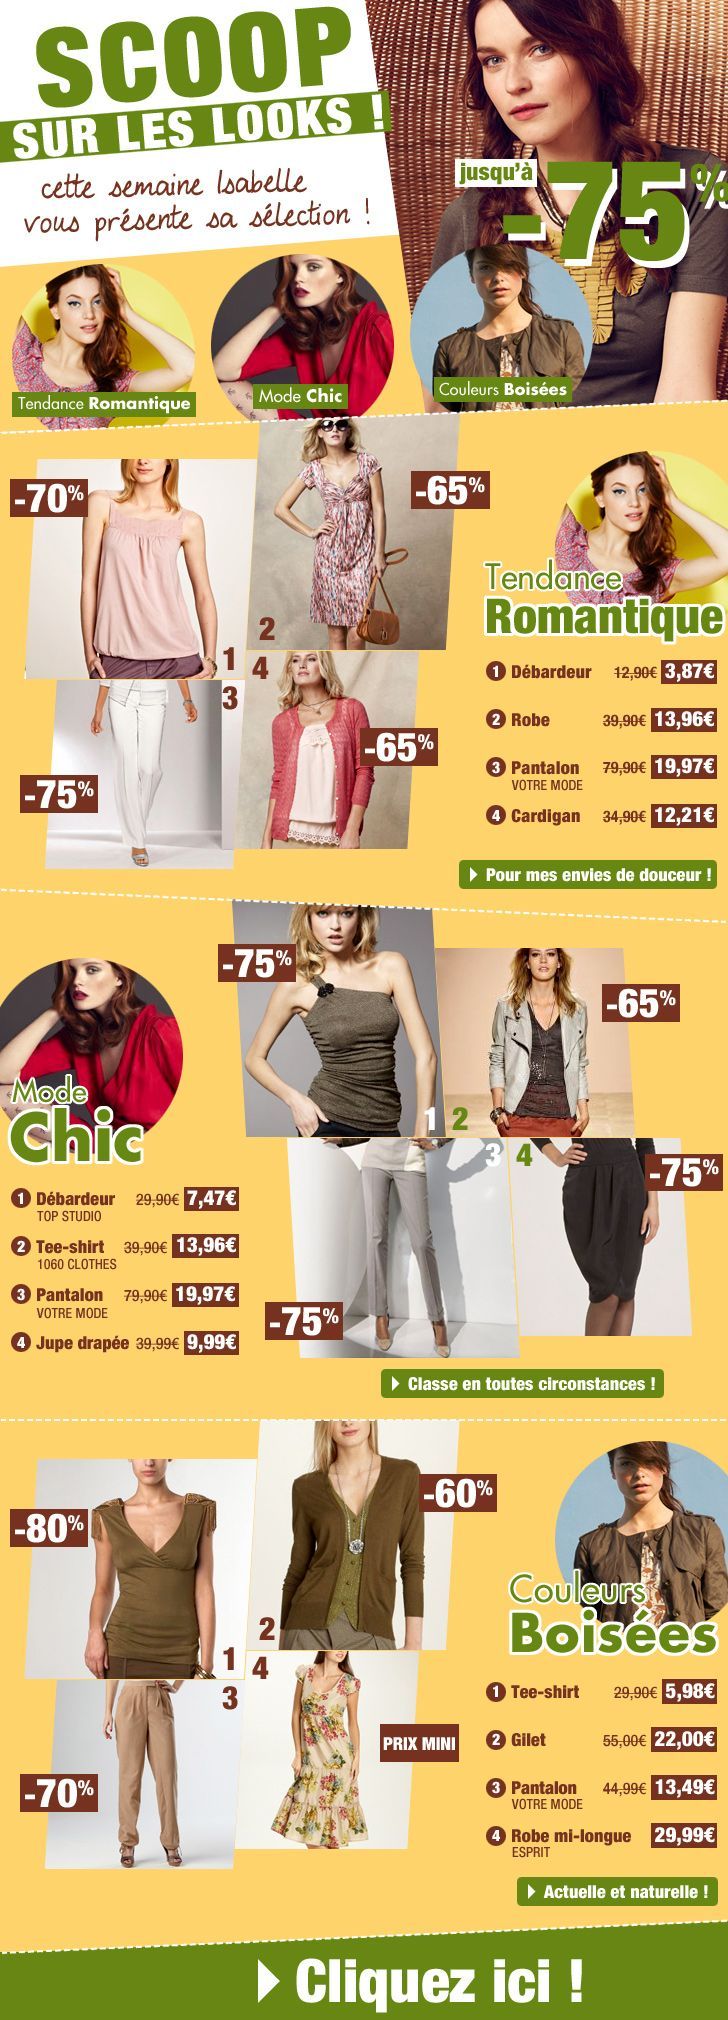 Scoop sur les looks / Janvier 2014 / Excedence.com  #EmailMarketing #DigitalMarketing #EmailDesign #EmailTemplate #SocialMedia #EmailNewsletters #EmailRetail #excedence #destockagemode